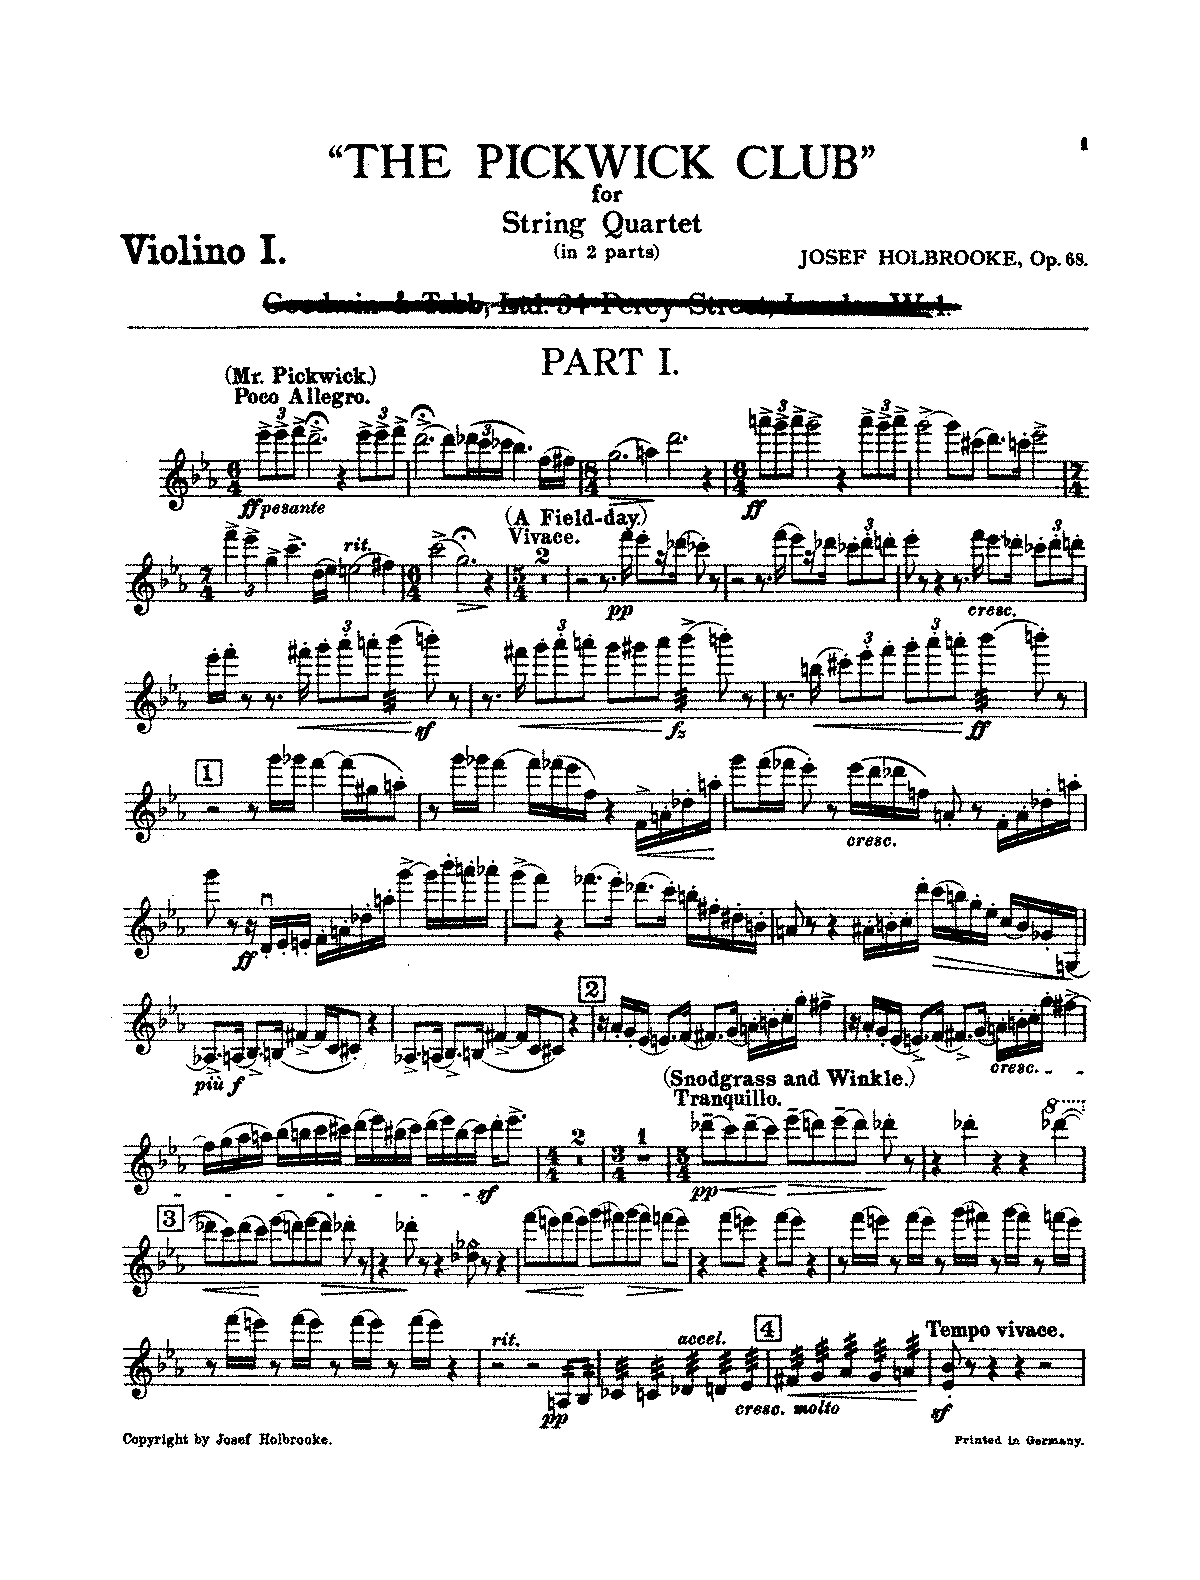 PMLP58243-Holbrooke - The Pickwick Club - A Humoreske in Two Parts for String Quartet Op 68 (Violino I).pdf